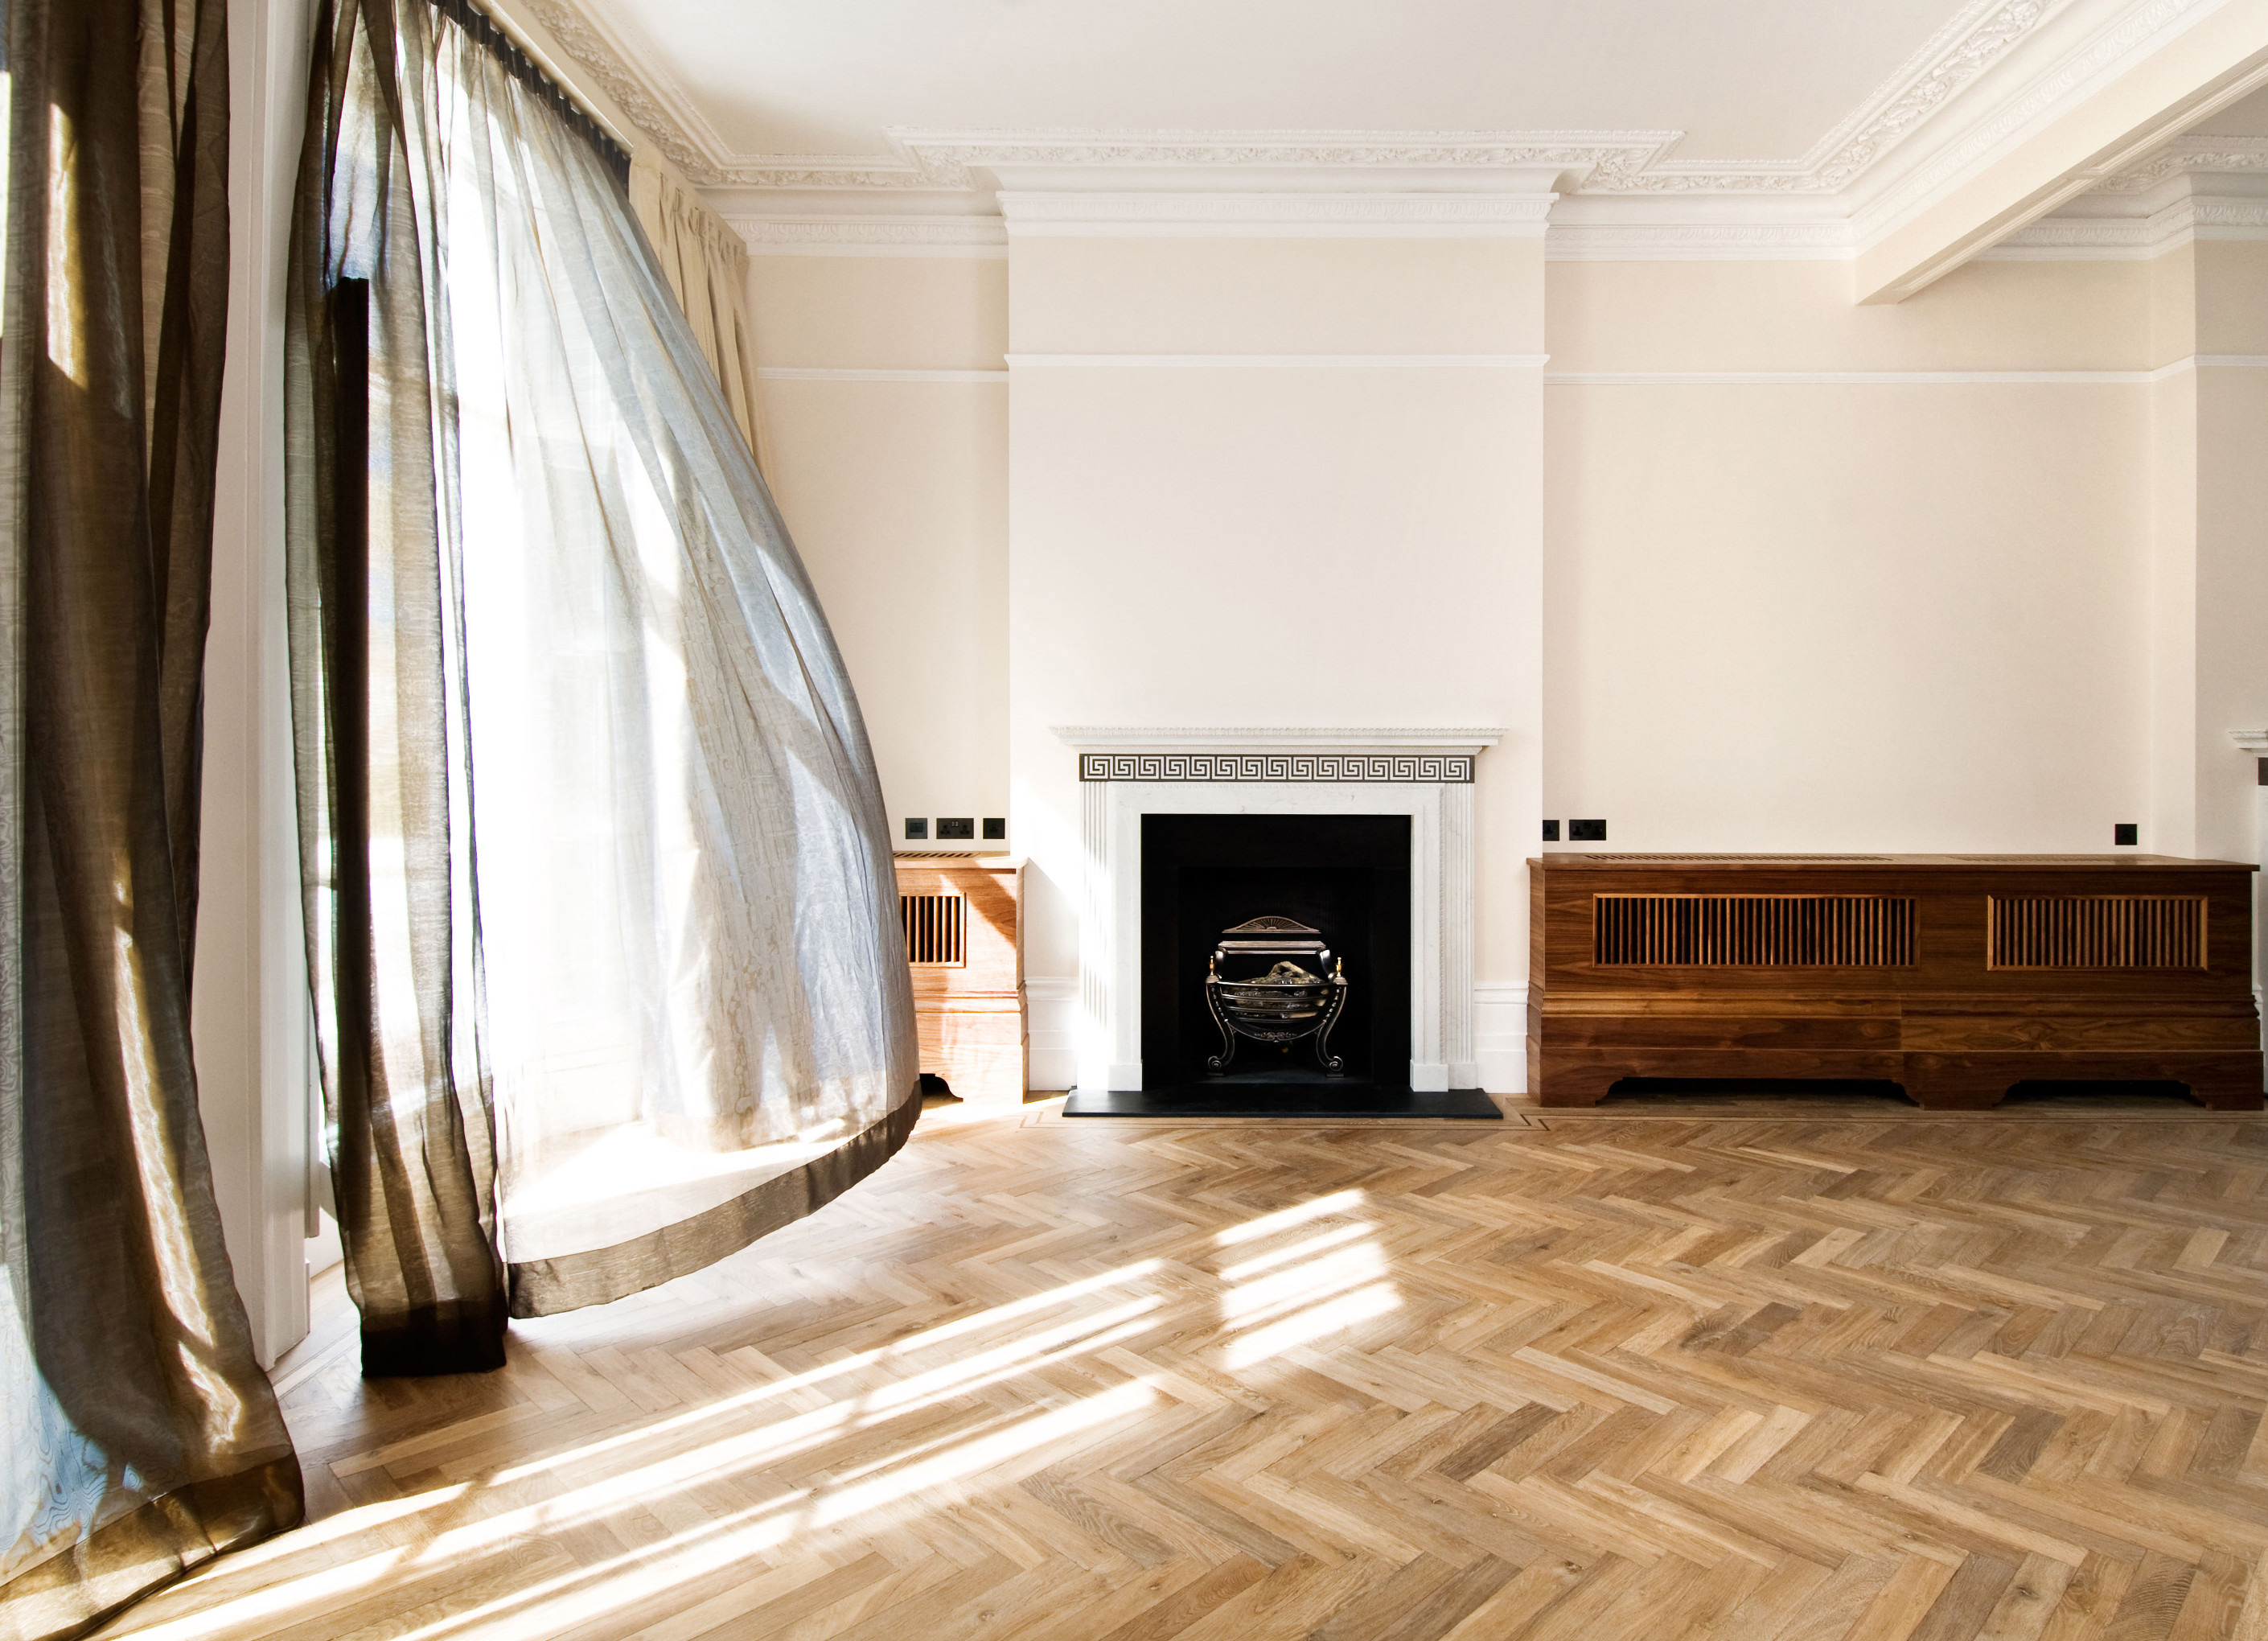 Oak landmark saltram herringbone with marble fireplace and billowing curtain